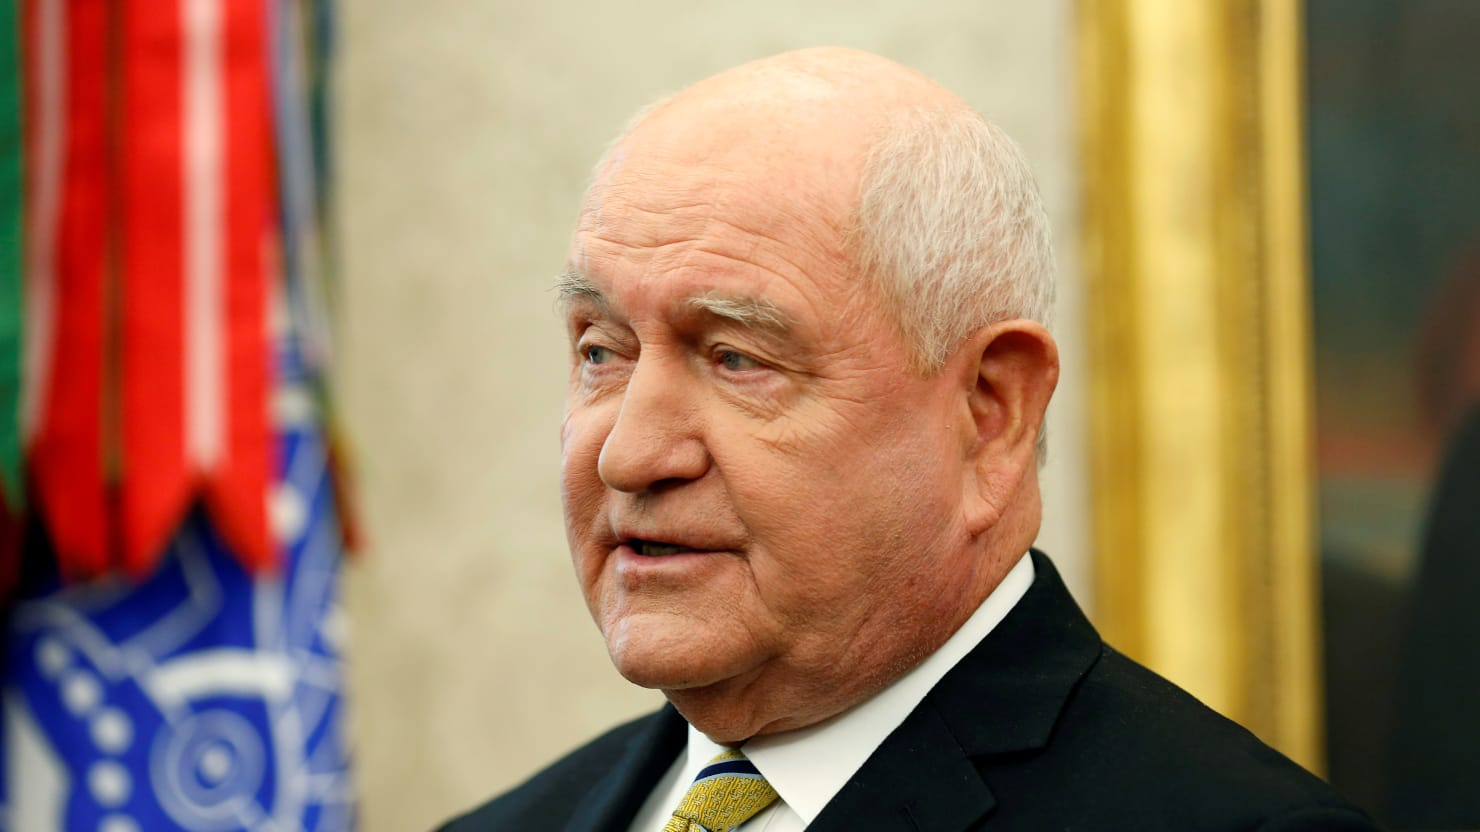 Agriculture Secretary Sonny Perdue: 'Farmers Are Casualties' of Trump's Trade War